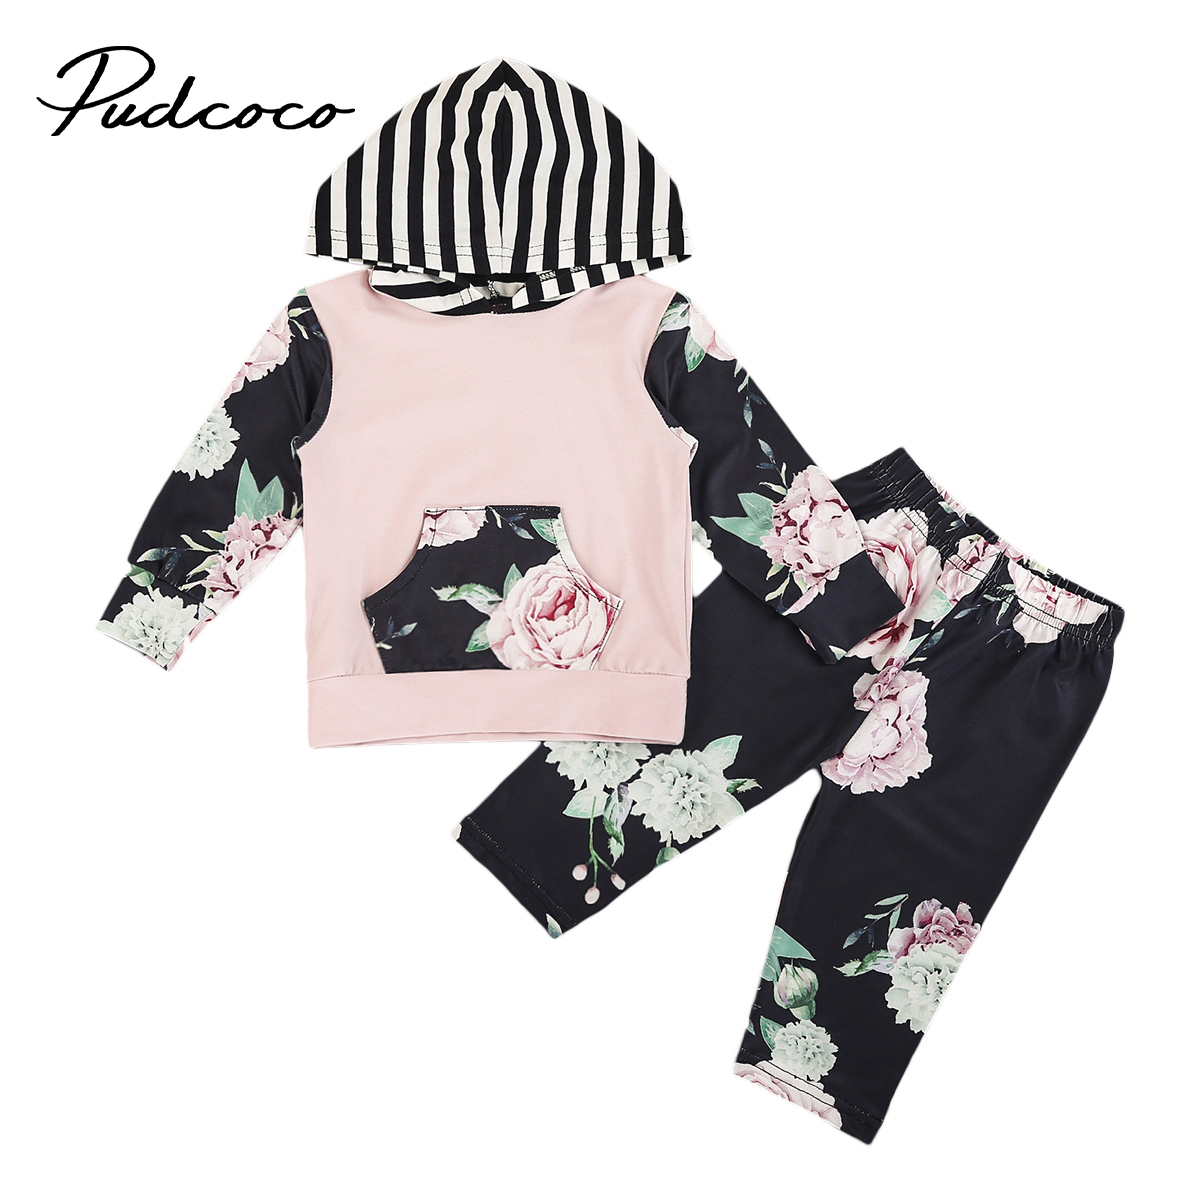 Pudcoco Newborn Infant Baby Boys Girls Floral Clothes Cotton Long Sleeve Hooded Tops+Pants Outfits Set 0-24 Months Helen115